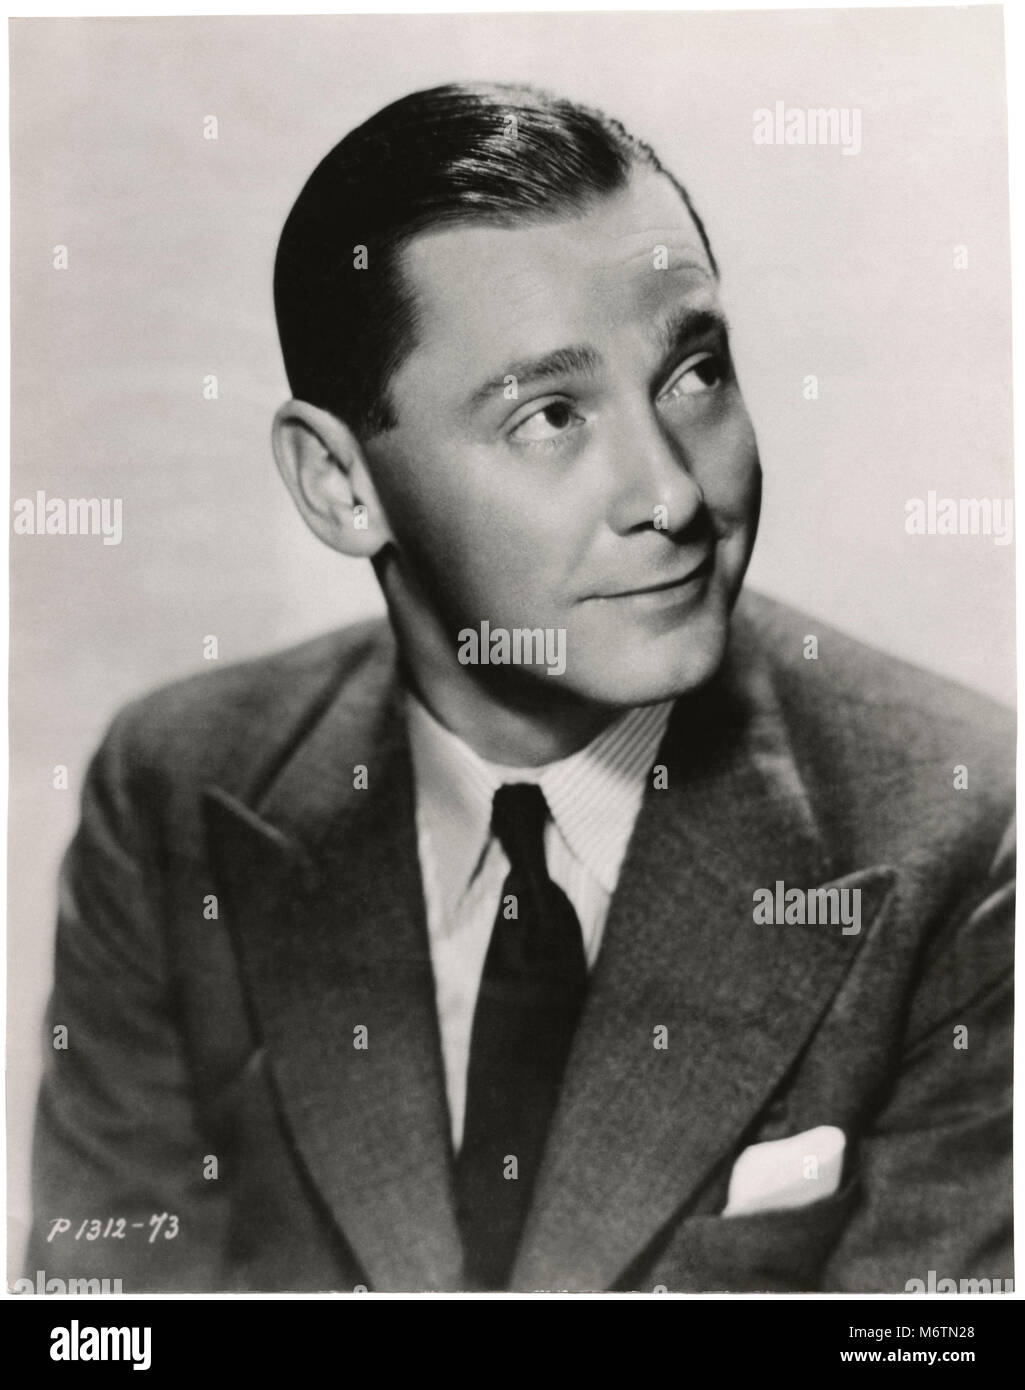 """Herbert Marshall, Publicity Portrait for the Film, """"Trouble in Paradise"""", Paramount Pictures, 1932 Stock Photo"""